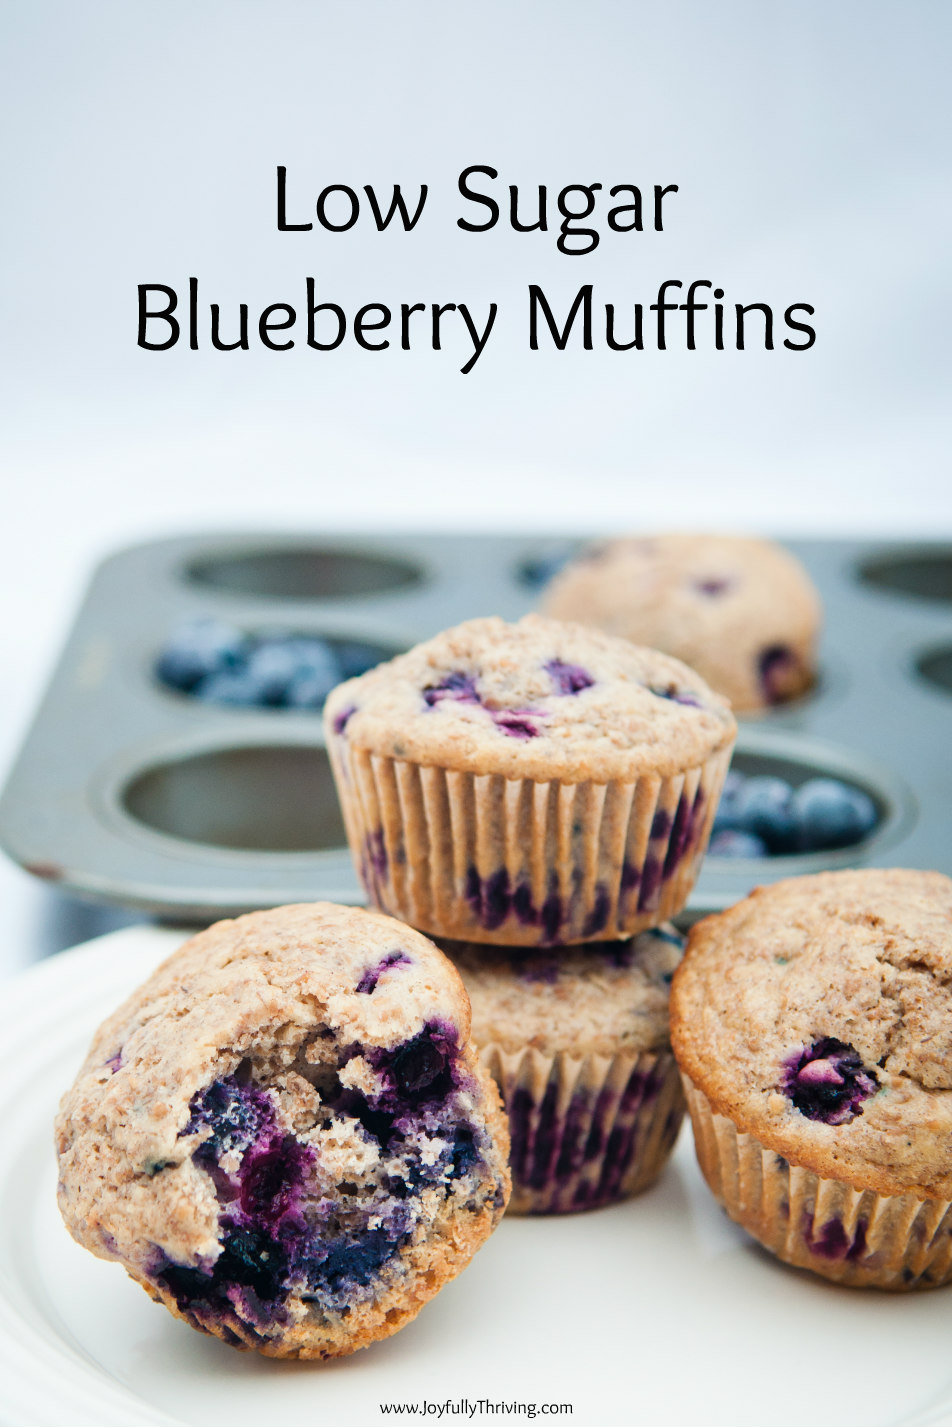 Blueberry Bran Muffins stacked in front of a muffin pan